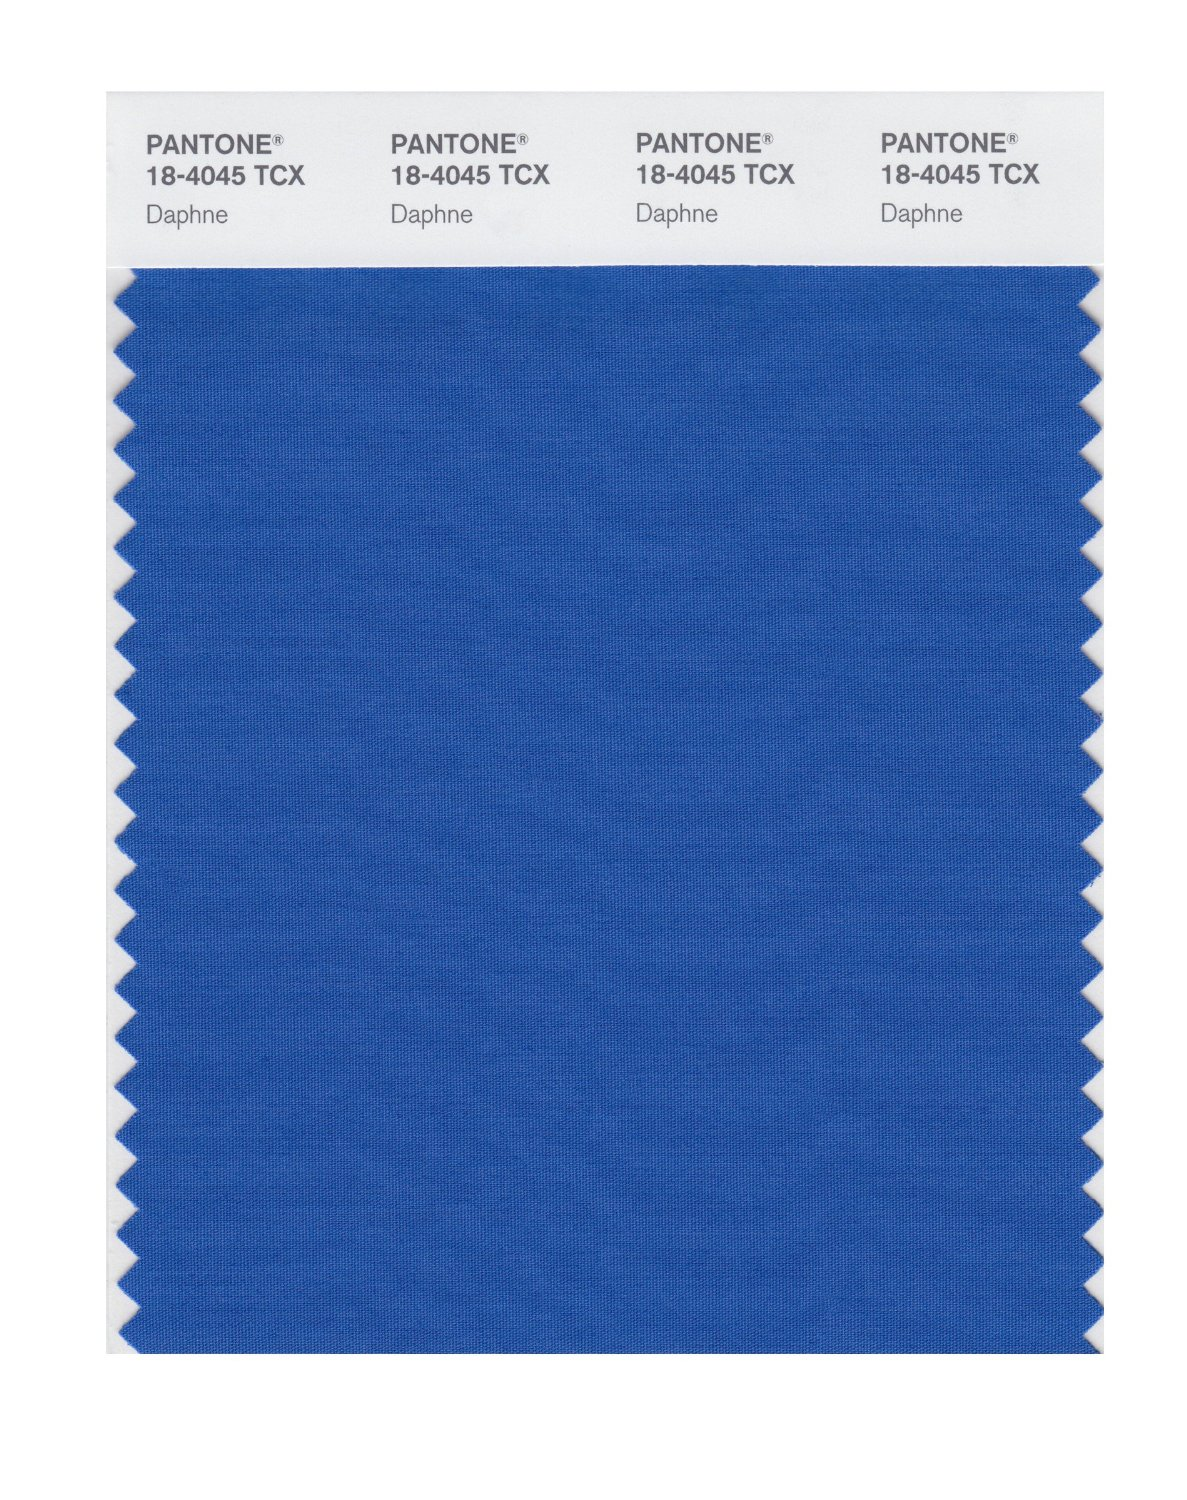 Pantone Smart Swatch 18-4045 Daphne